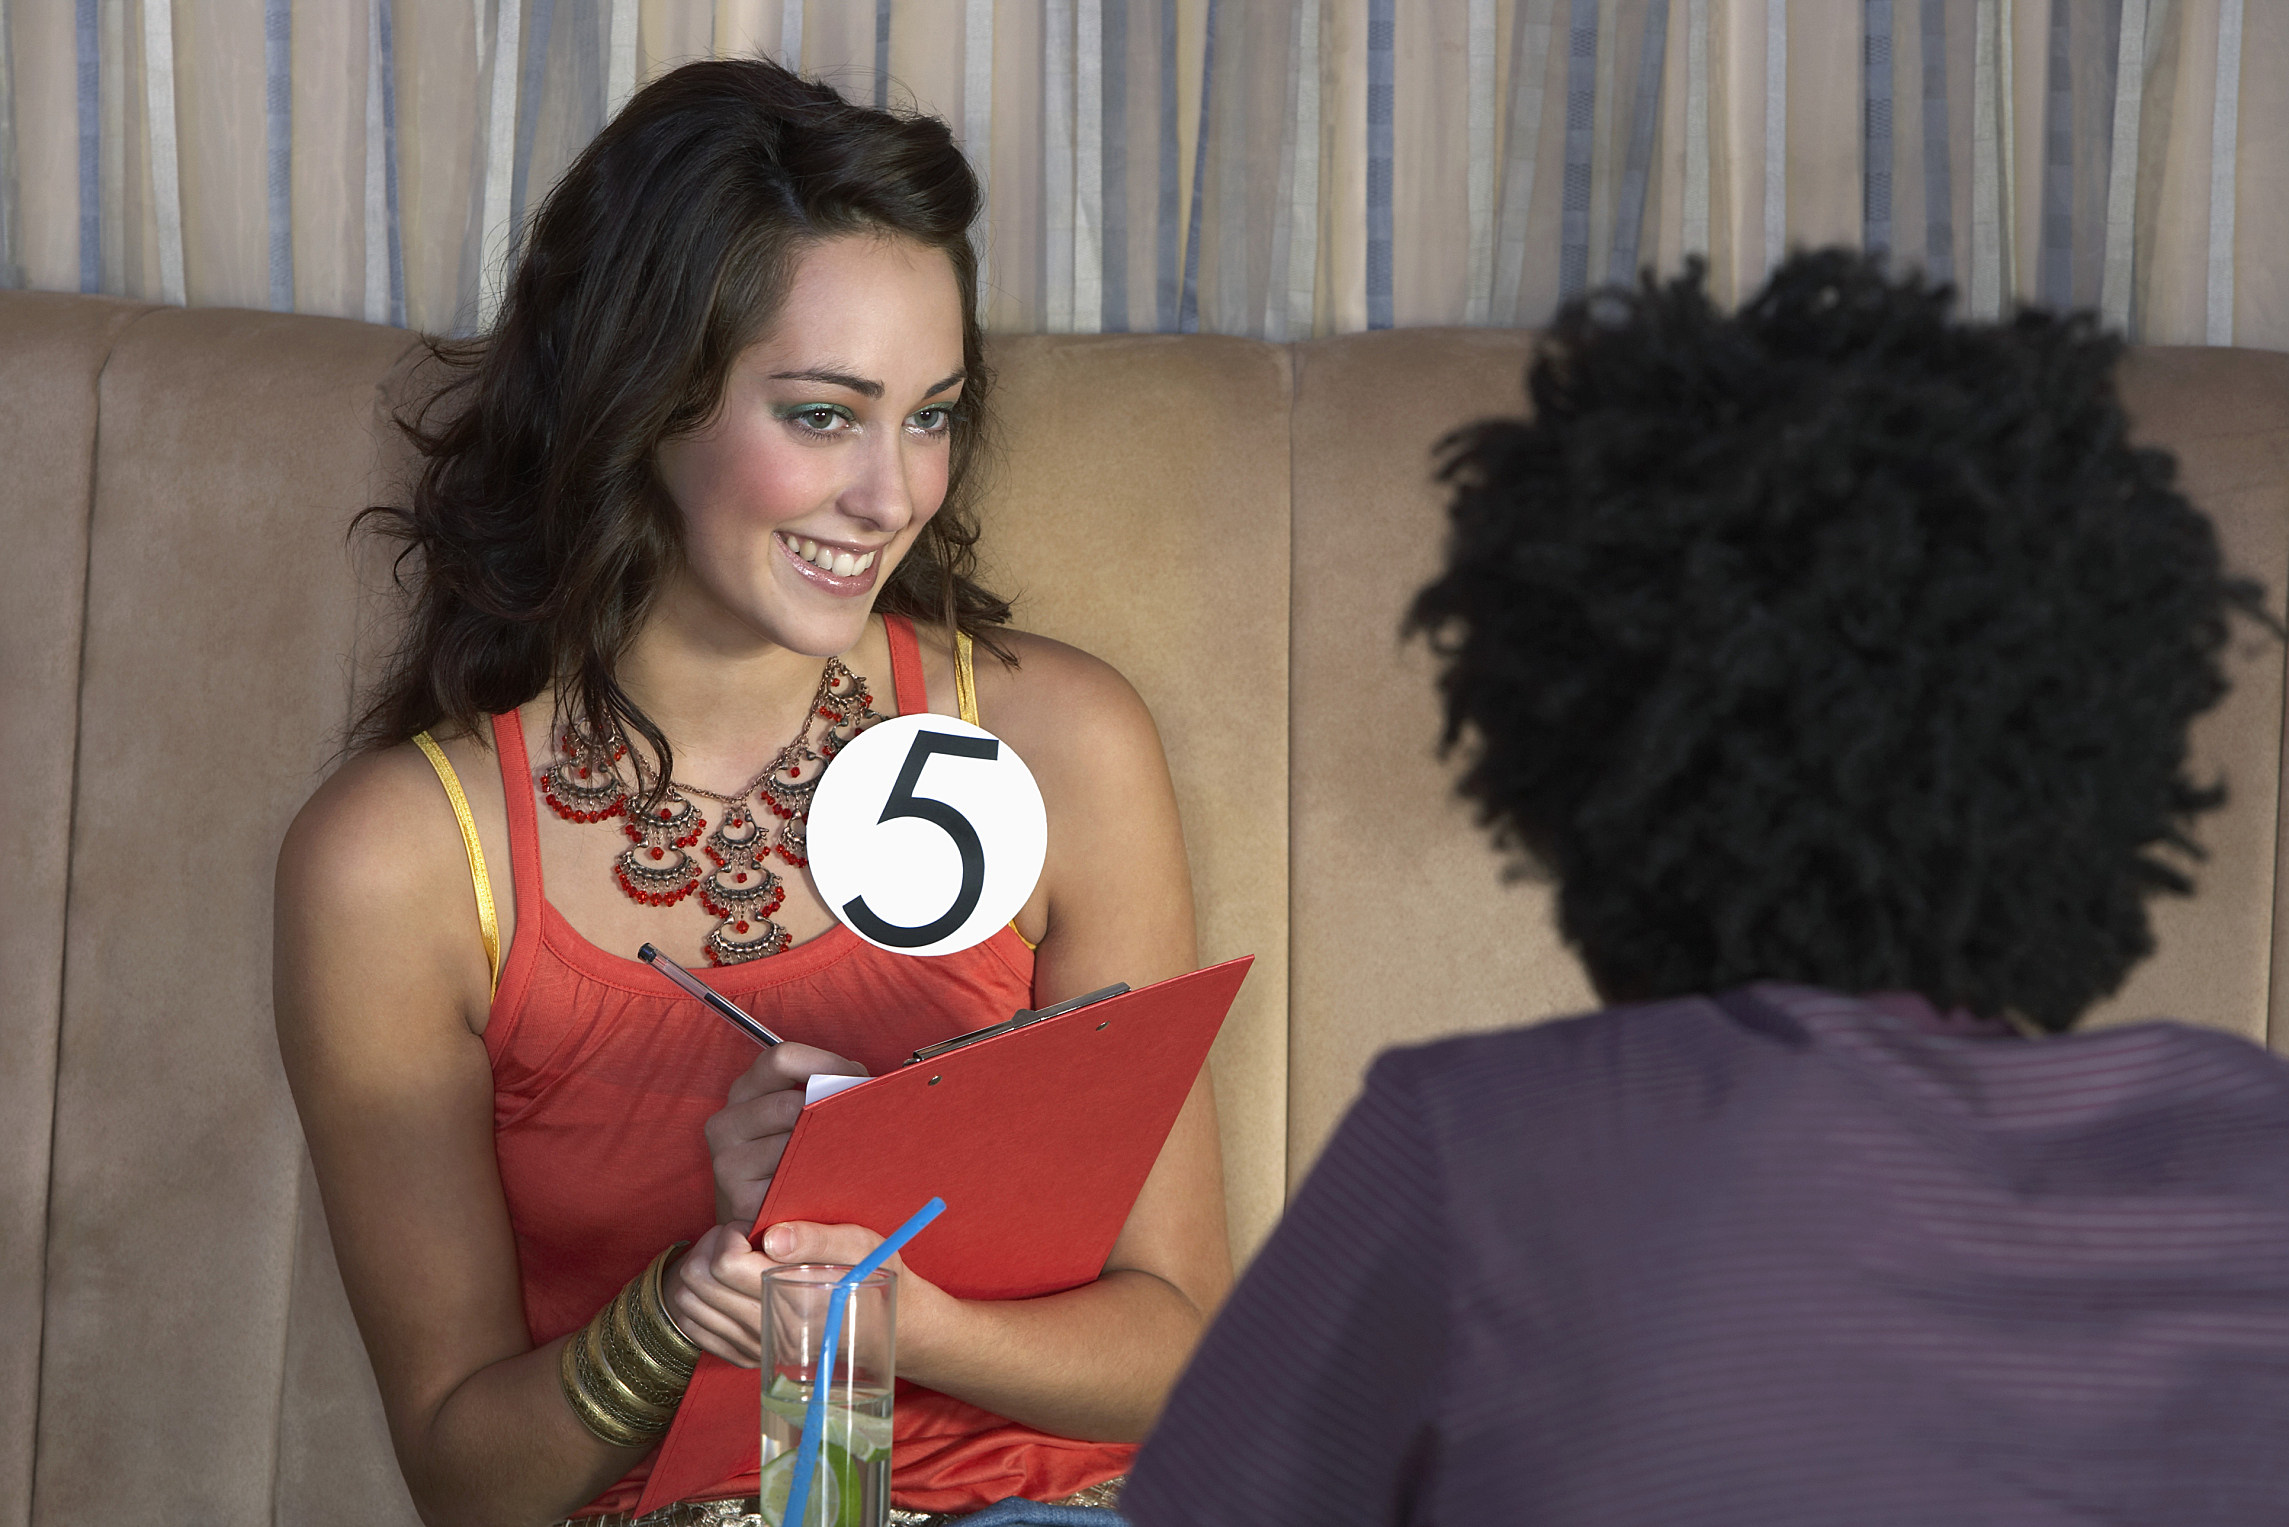 Speed dating events in rockford il